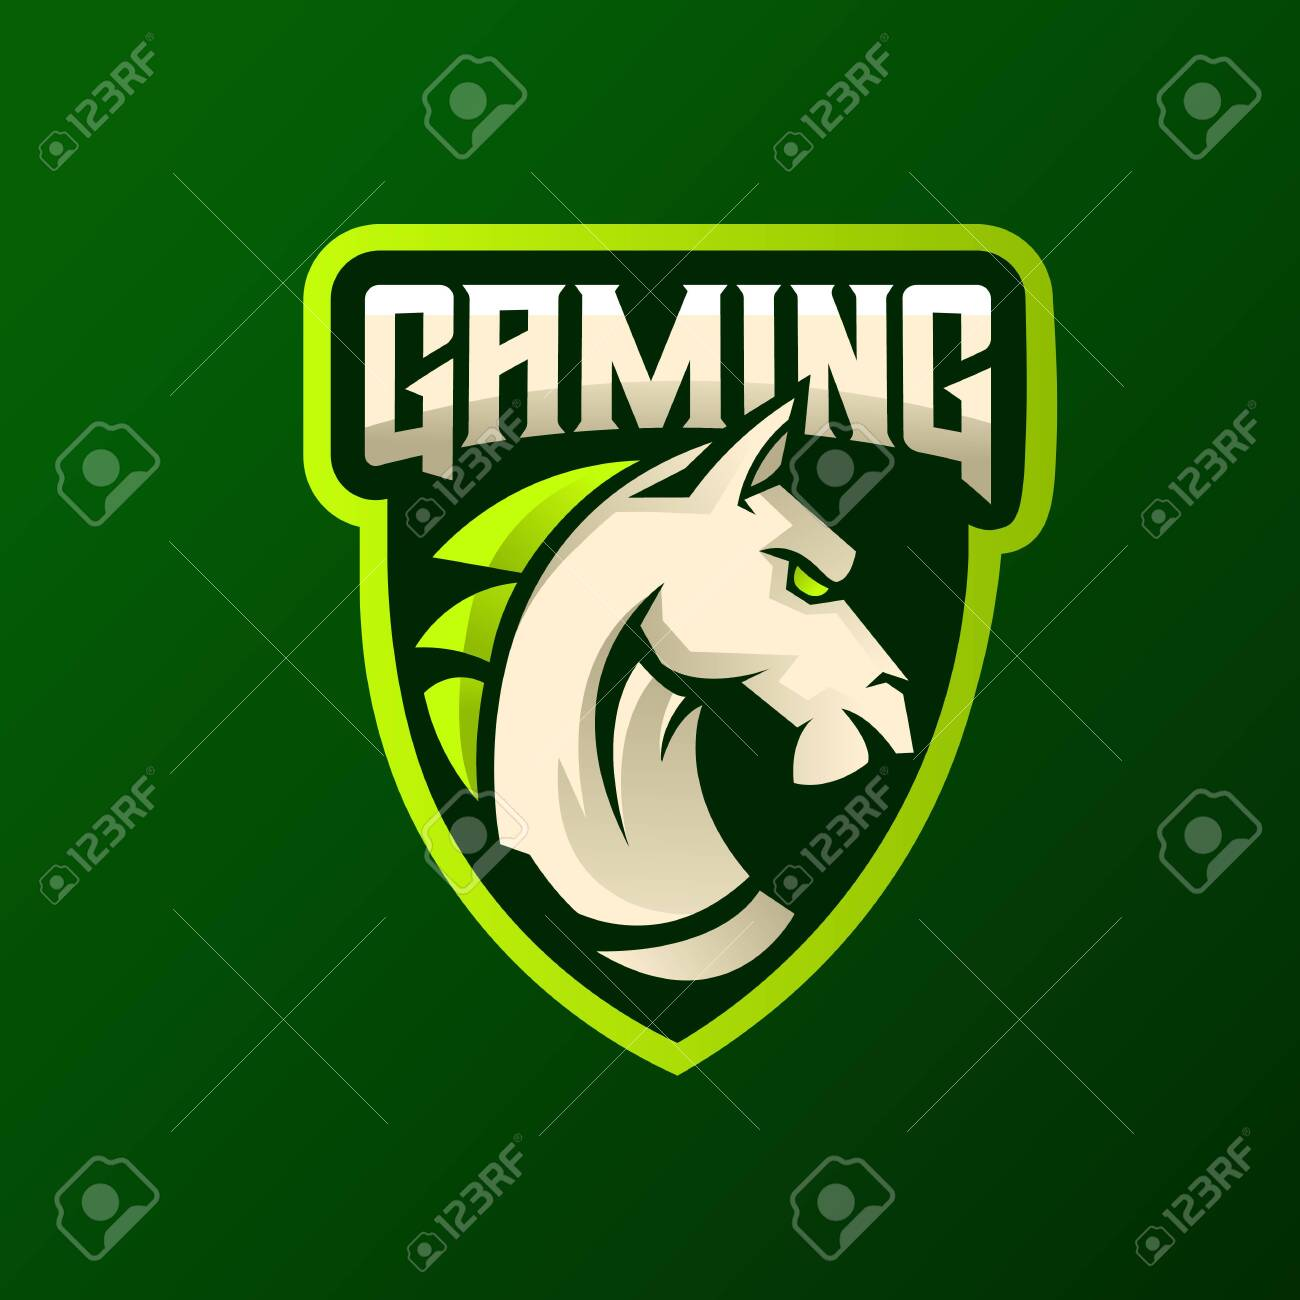 Horse Head Athletic Club Vector Logo Concept Isolated On Green Royalty Free Cliparts Vectors And Stock Illustration Image 150690891